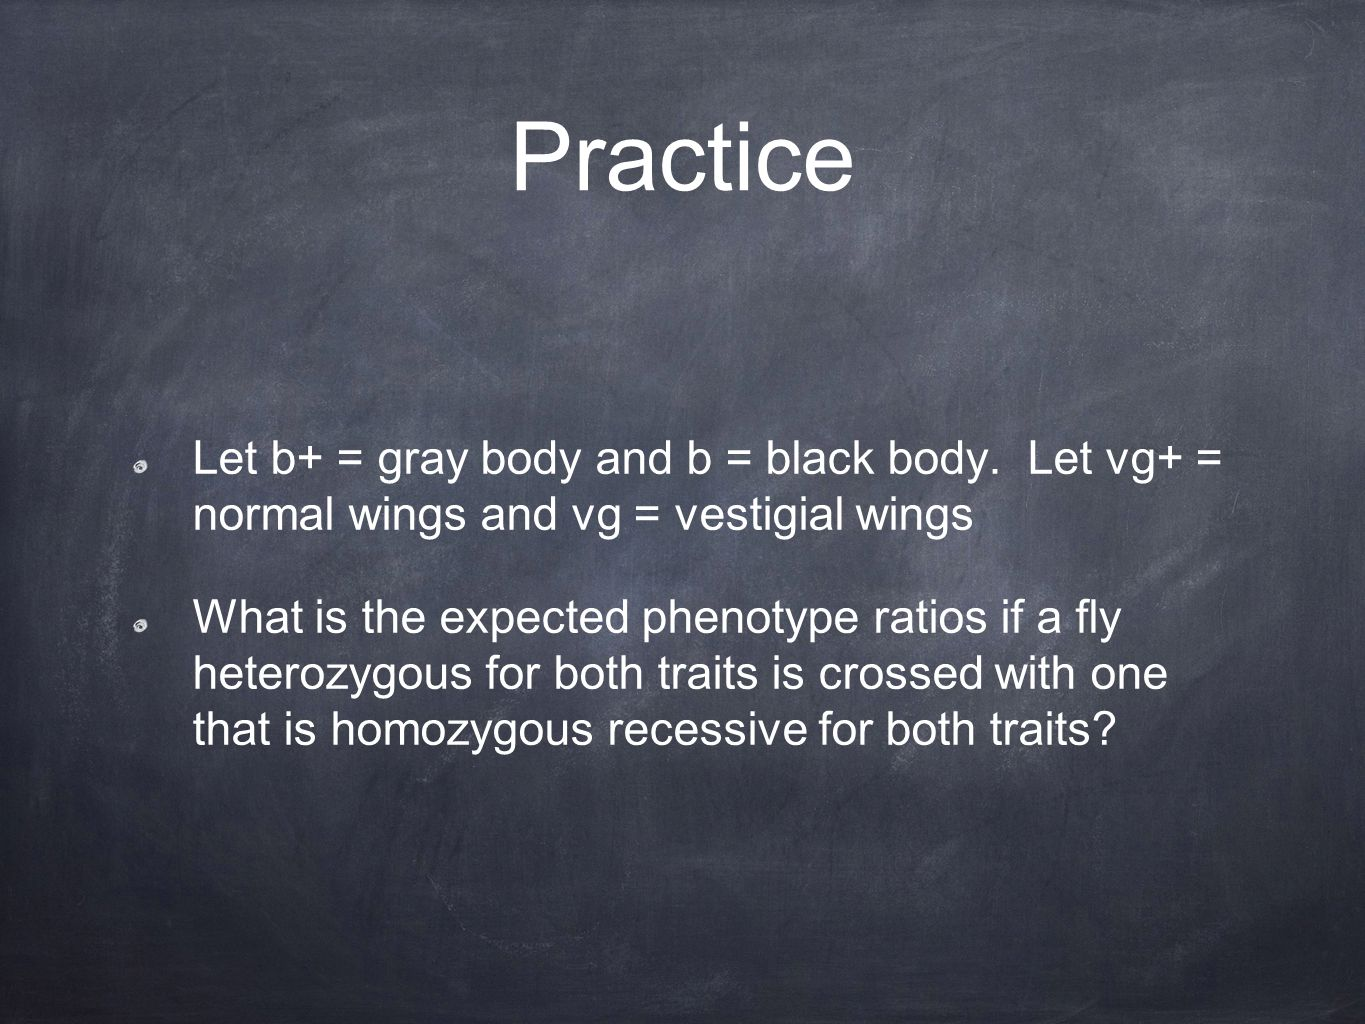 Practice Let b+ = gray body and b = black body.